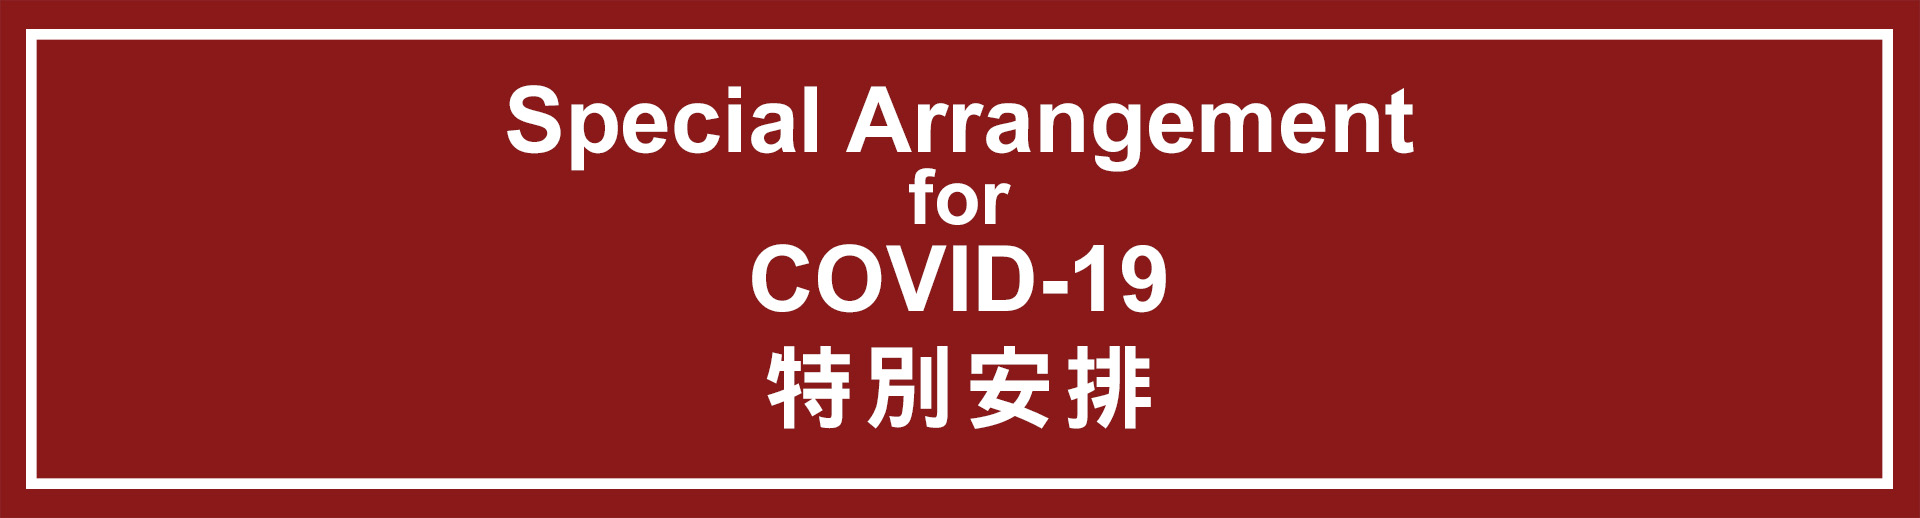 Special Arrangement for COVID-19 from Feb 21, 2021